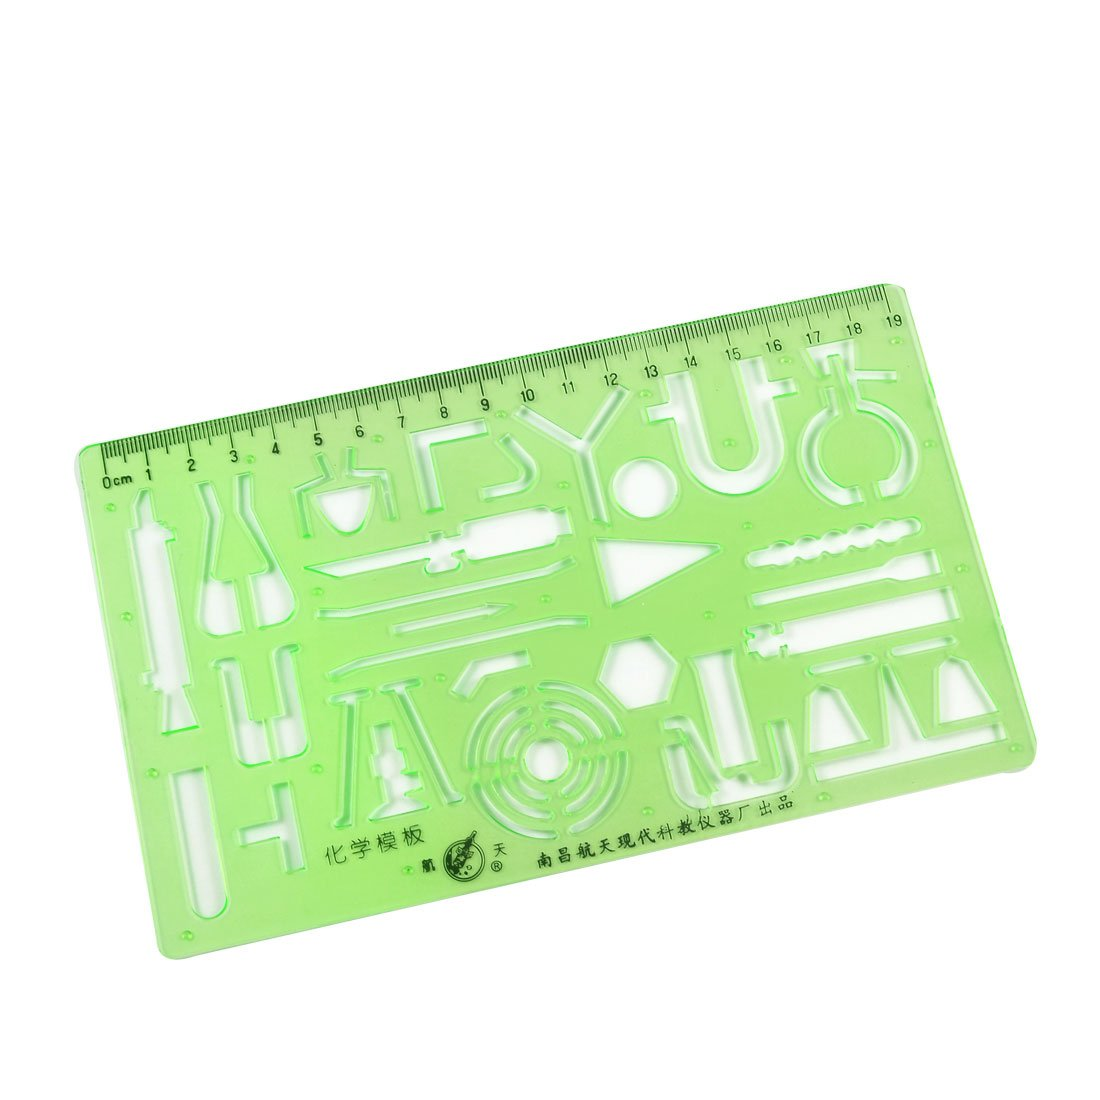 Uxcell 0-19cm Plastic Chemistry Drawing Template Ruler, Black Green